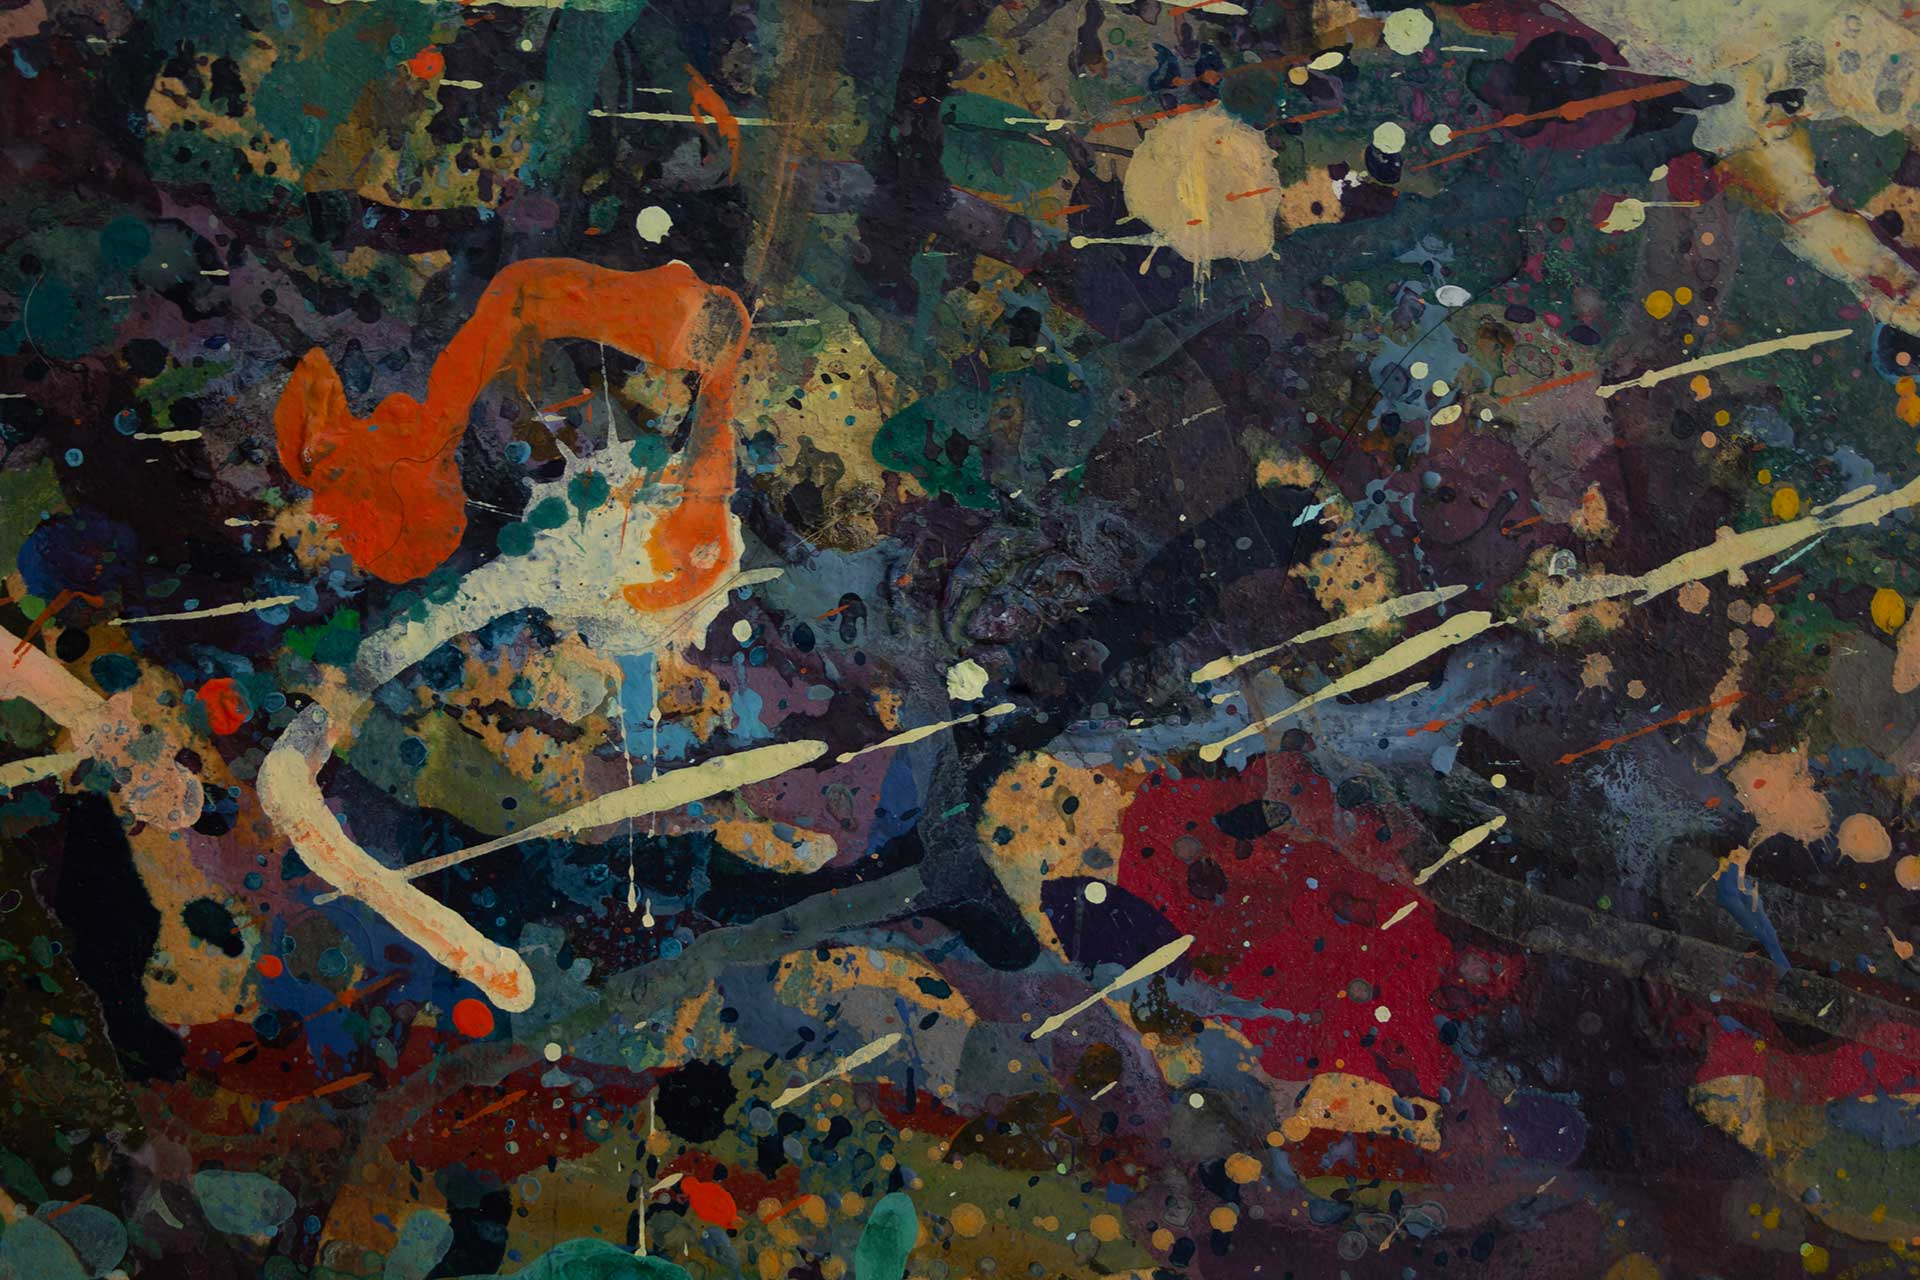 Abstract expressionism painting - Alien teddy bear dance party - Detail 4